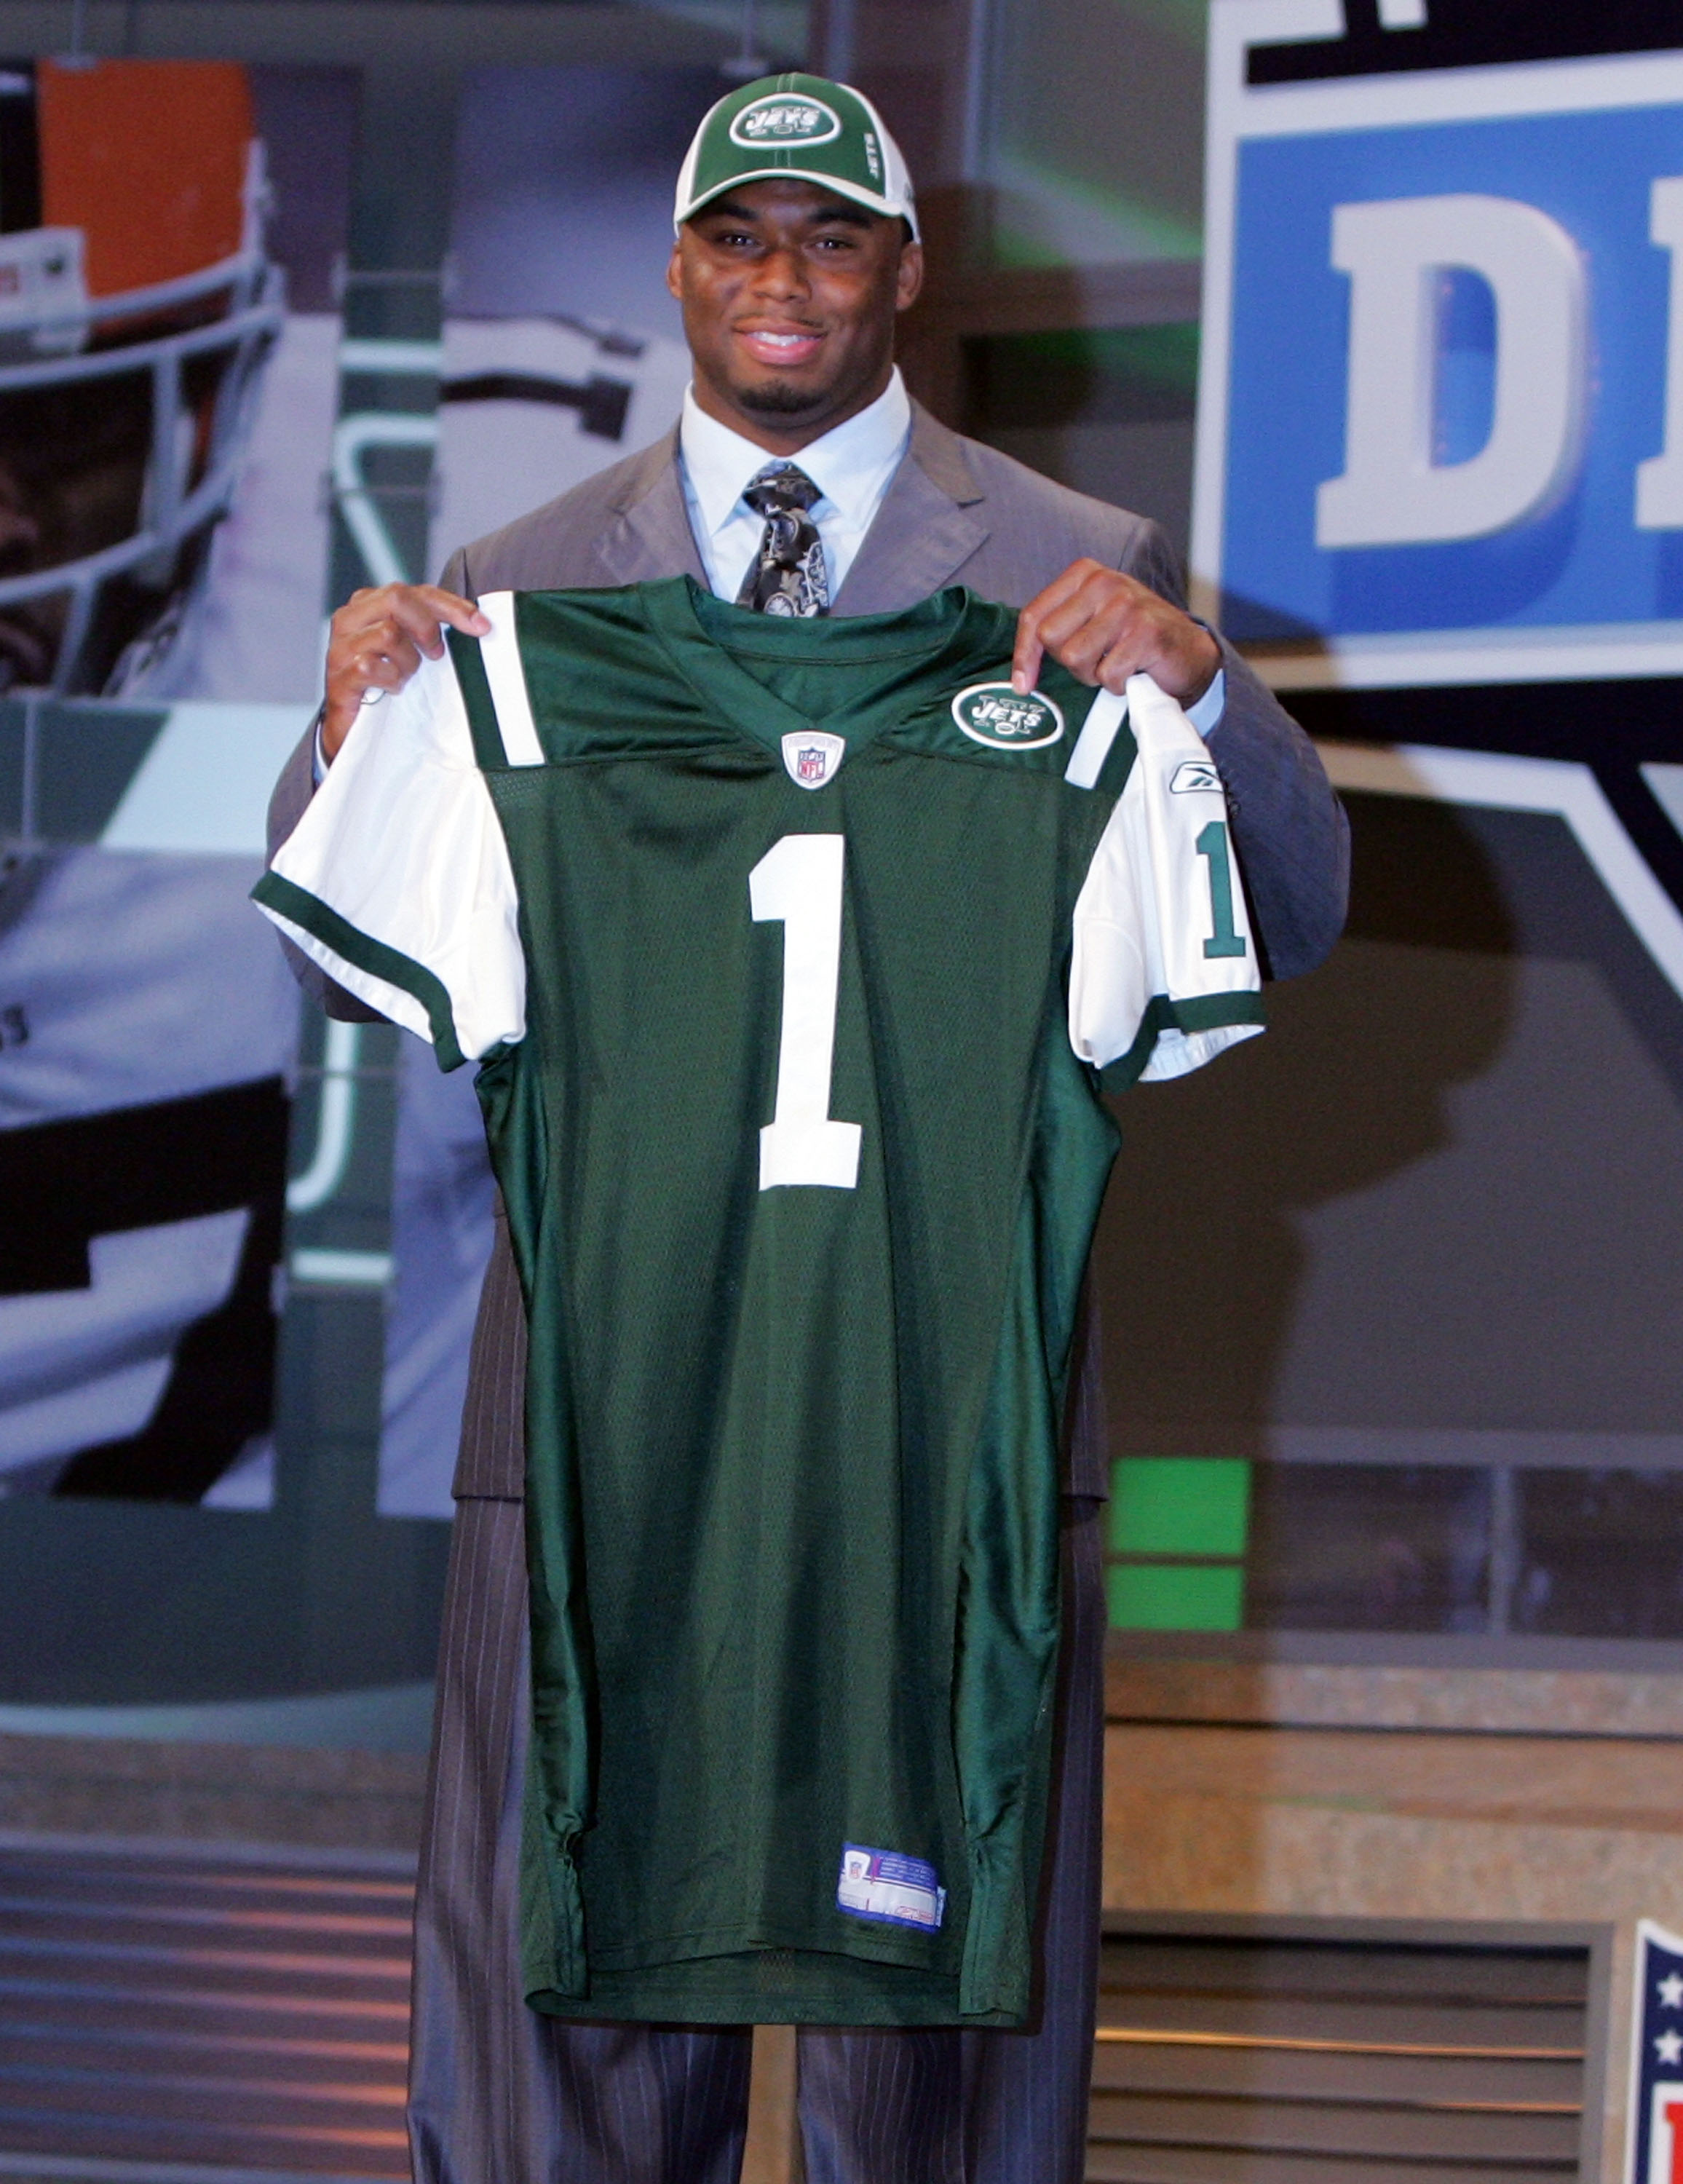 NEW YORK - APRIL 26:  Vernon Gholston poses for a photo after being selected as the sixth overall pick by the New York Jets during the 2008 NFL Draft on April 26, 2008 at Radio City Music Hall in New York City.  (Photo by Jim McIsaac/Getty Images)